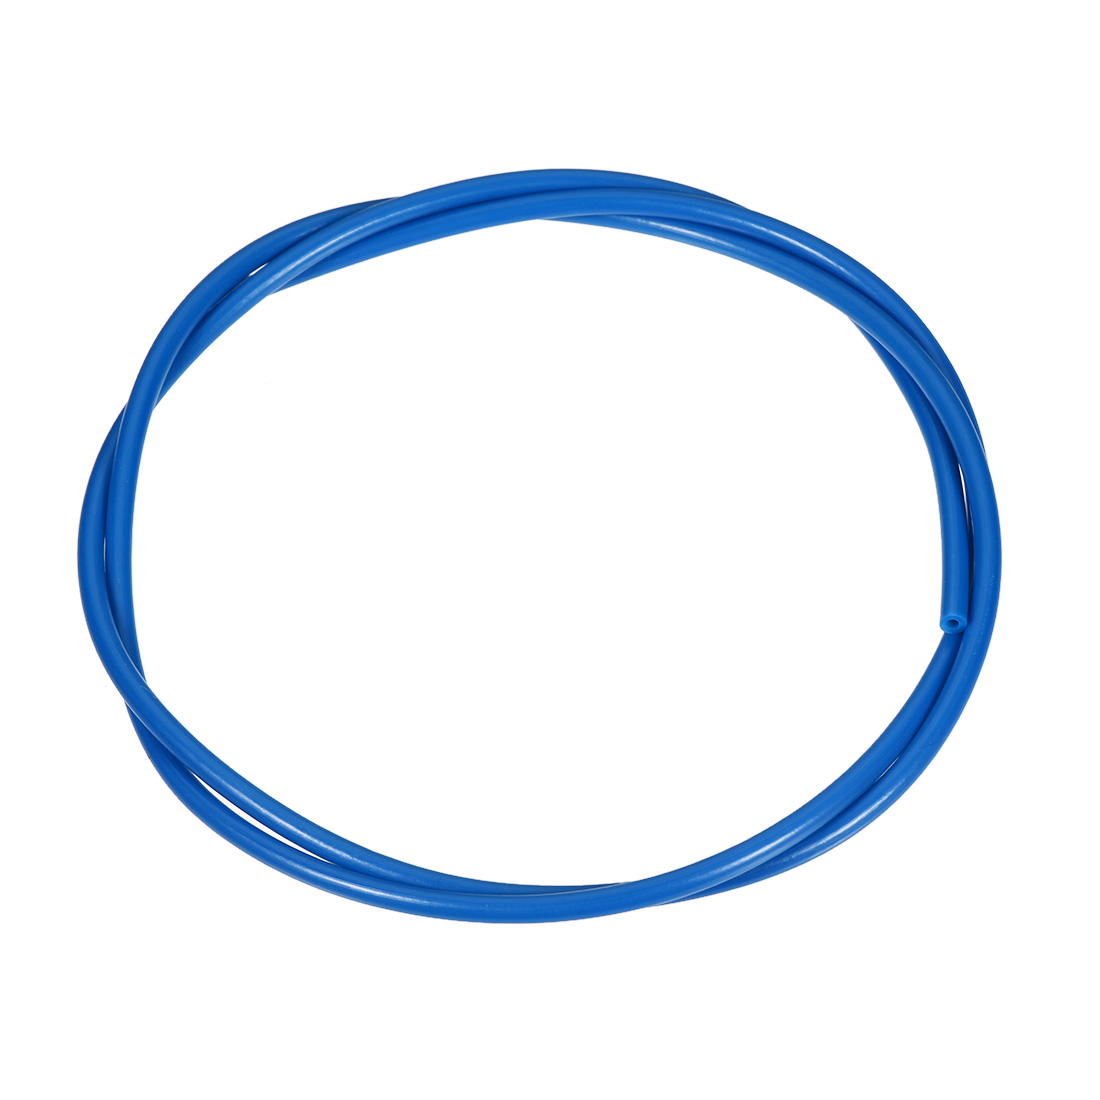 PTFE Tube 3.2Ft - ID 2mm x OD 4mm Fit 1.75 Filament for 3D Printer Blue